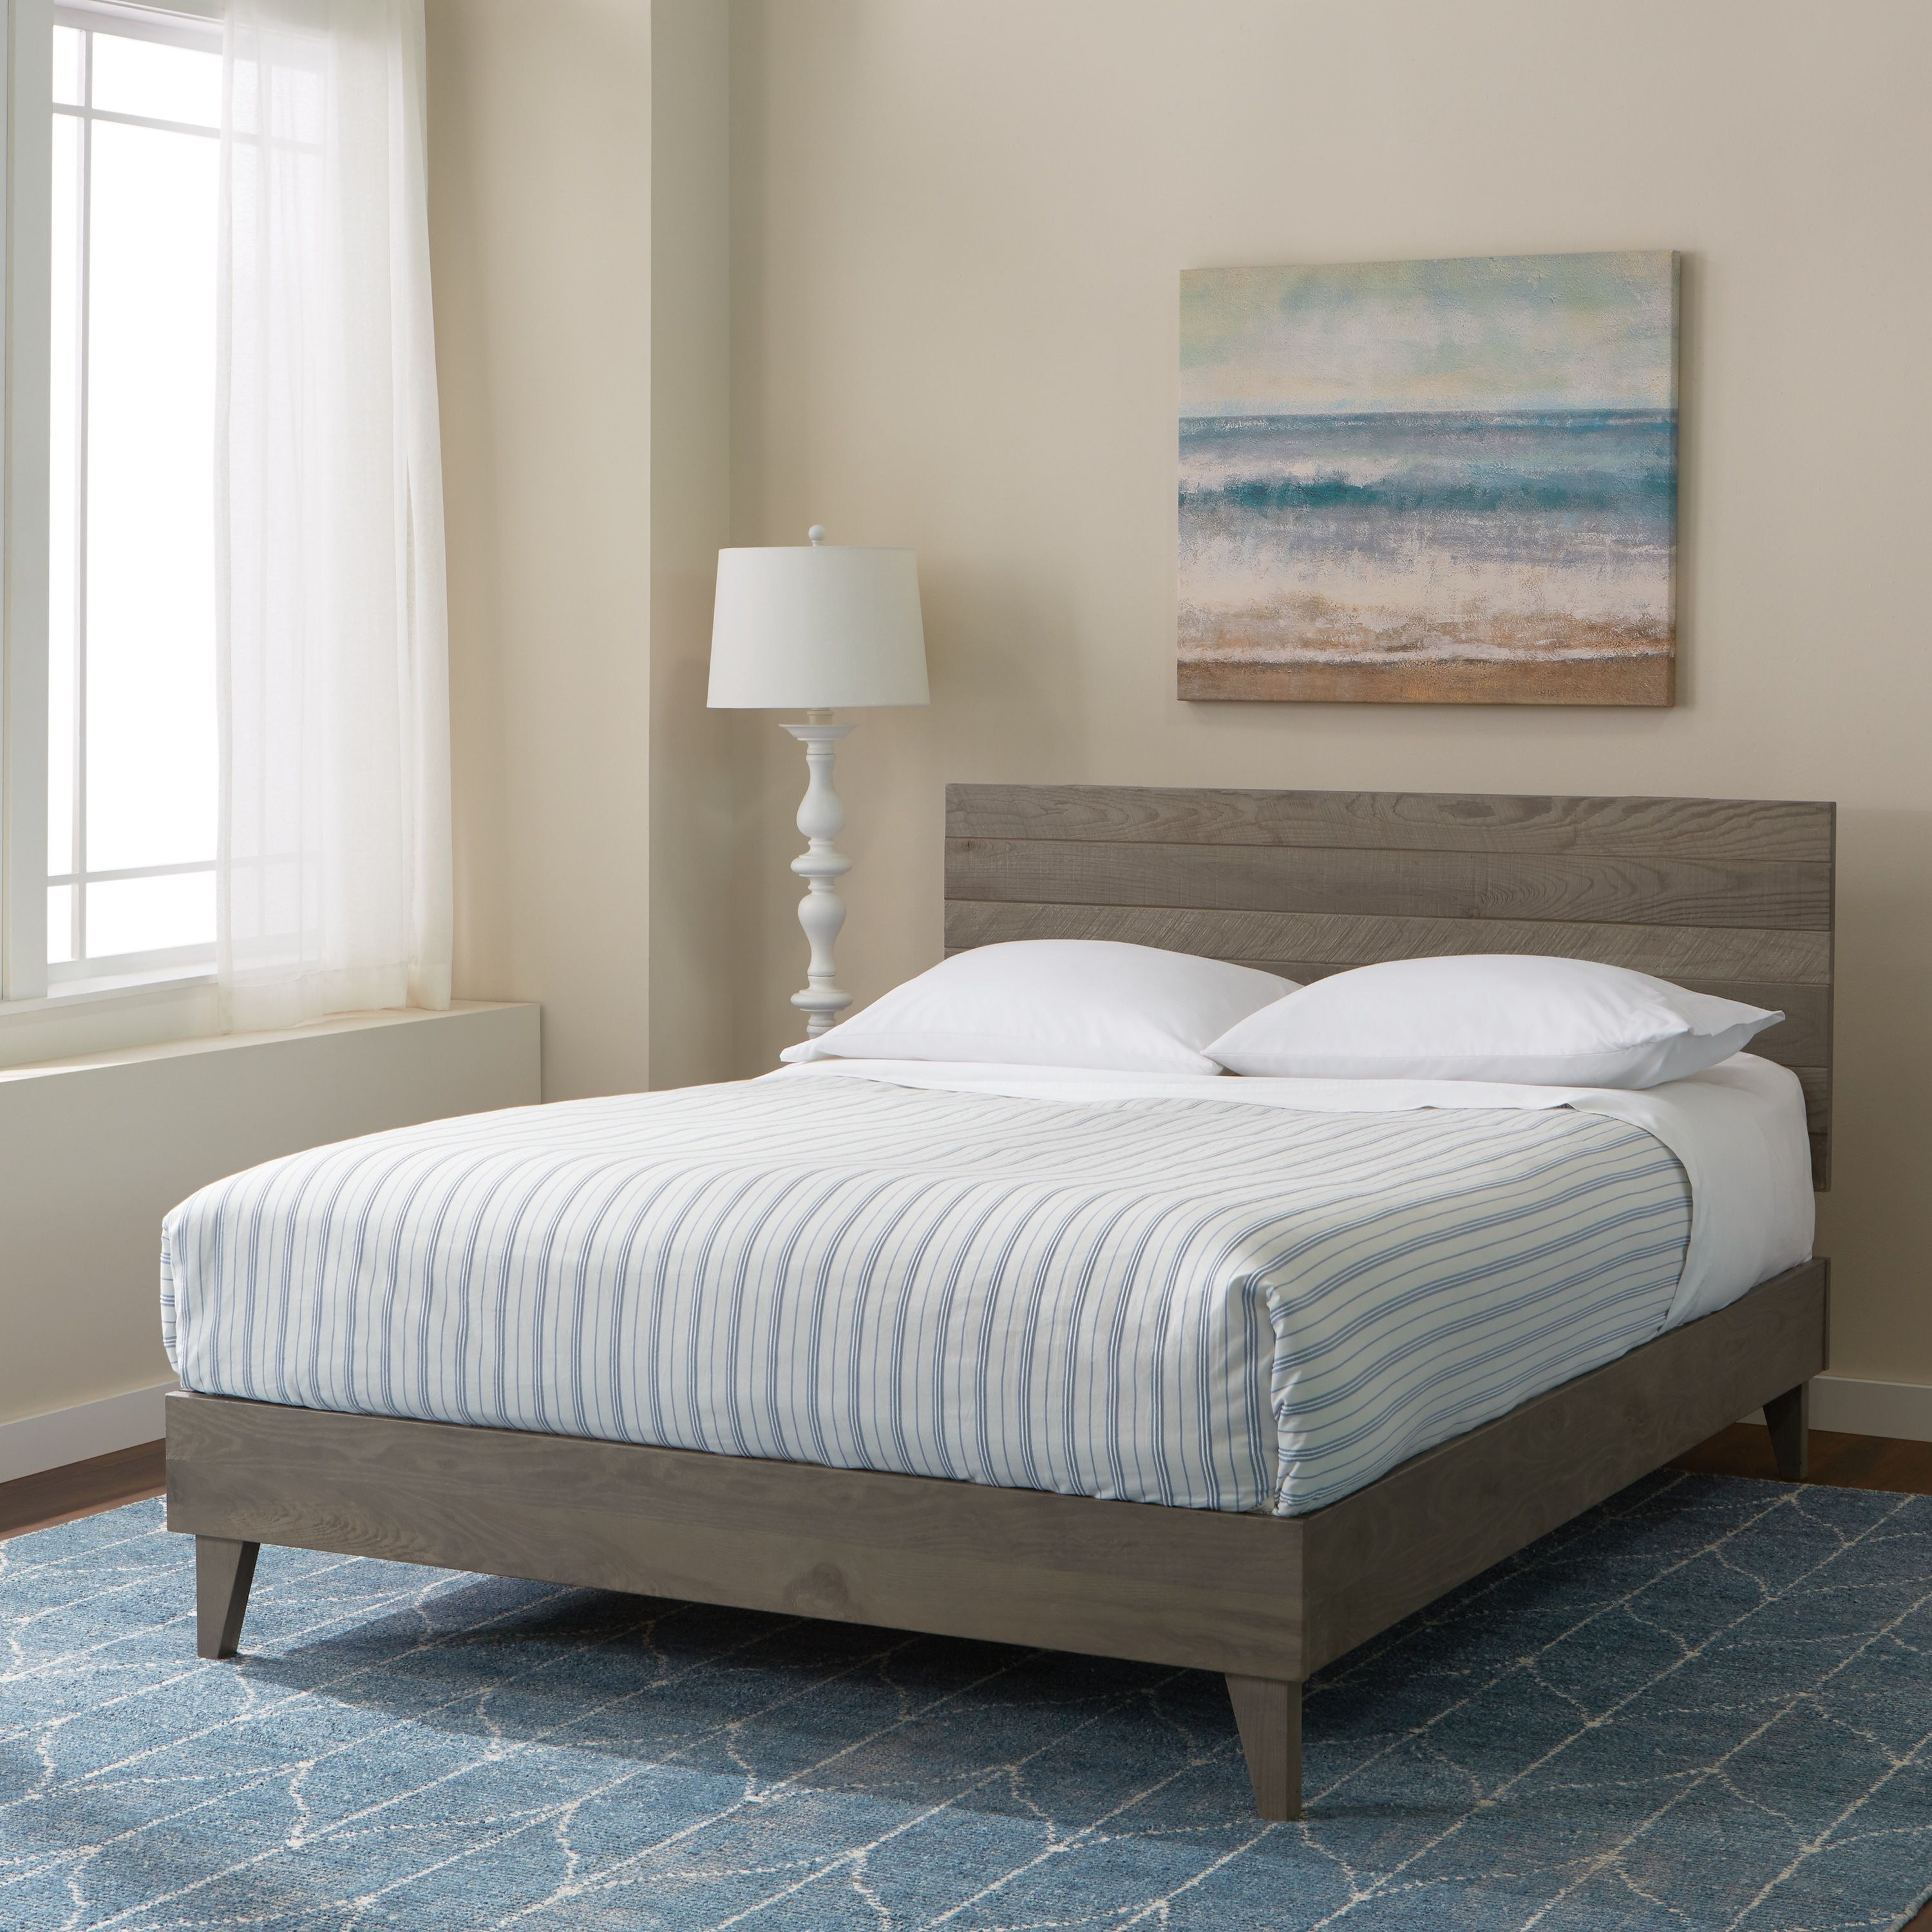 Kotter Home Barnwood Platform Bed Frame and Headboard